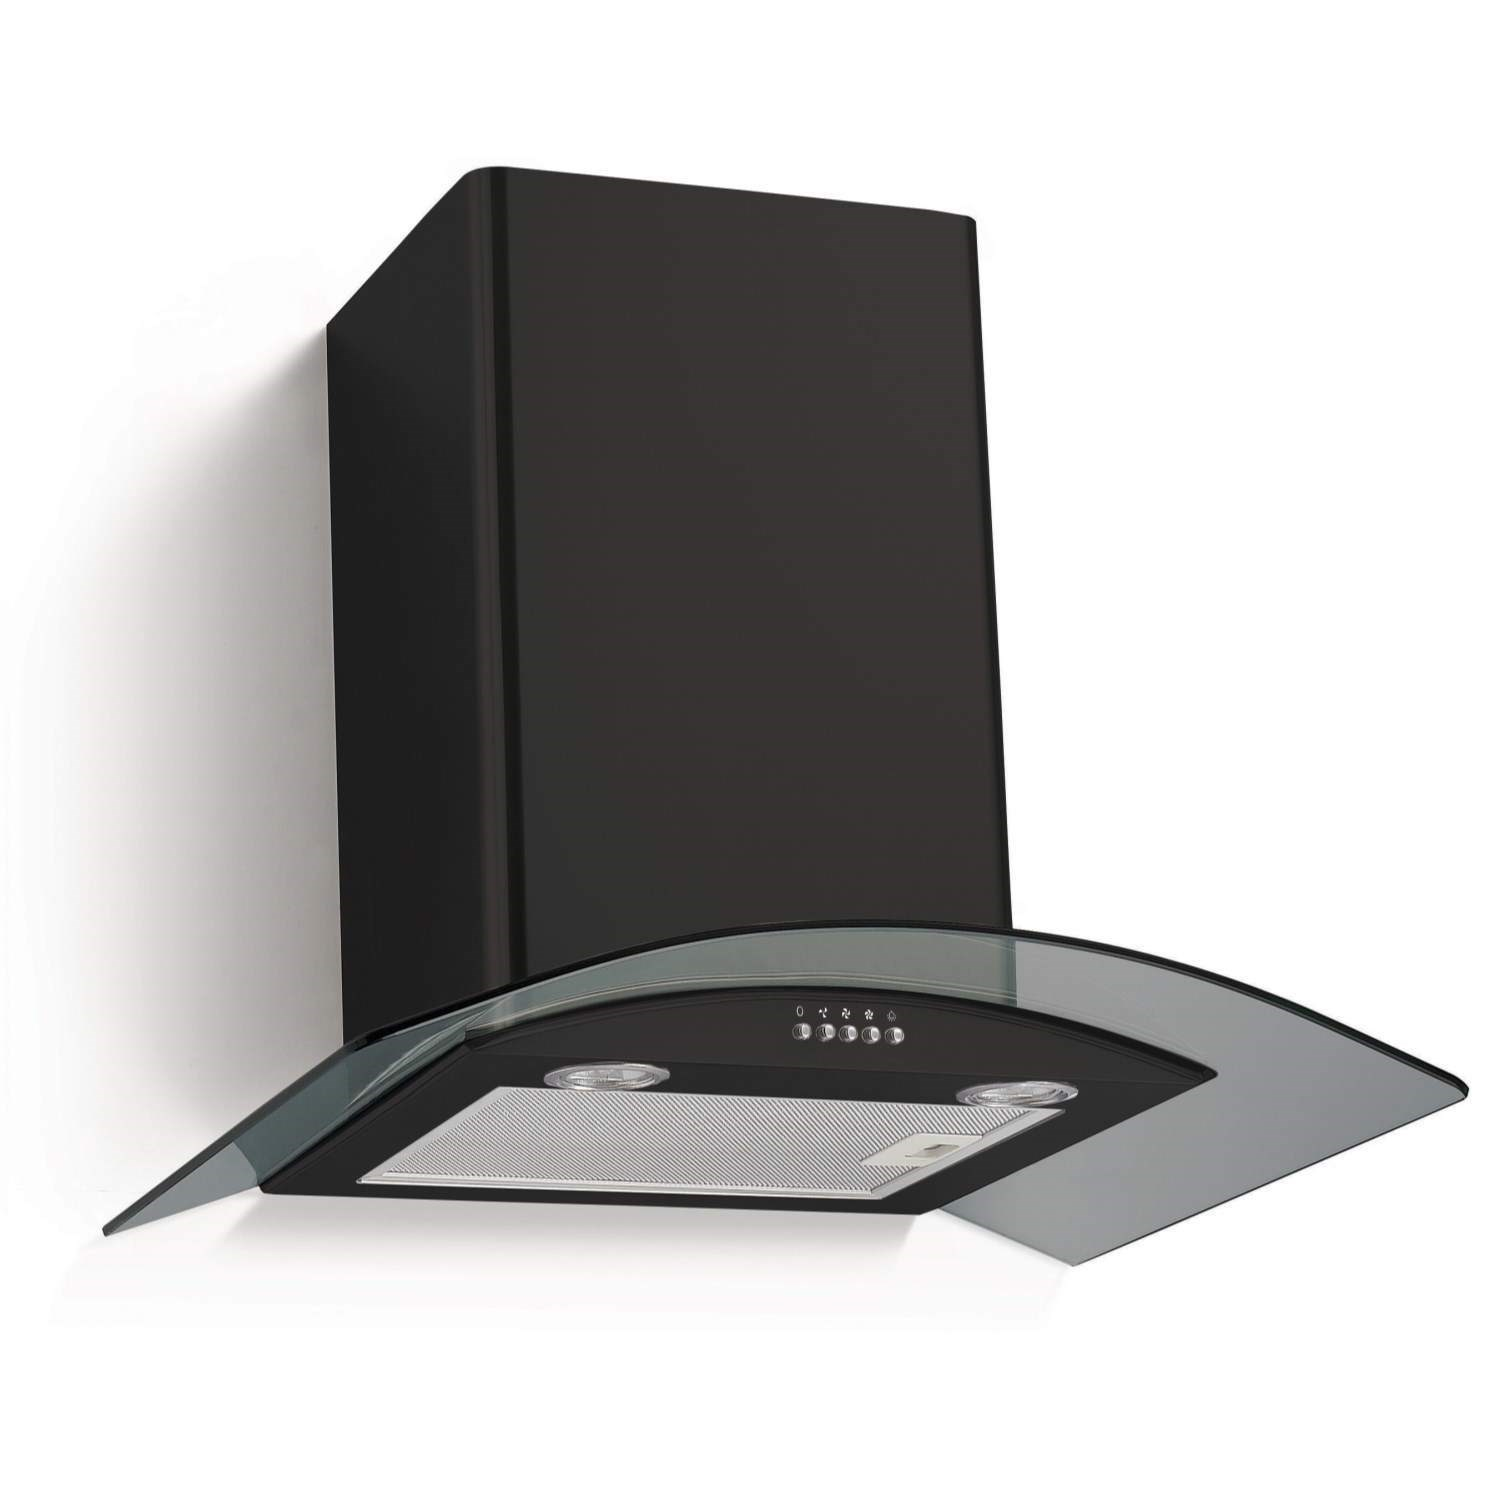 Cooker Hood With A Window ~ Electriq cm curved glass chimney cooker hood satin black